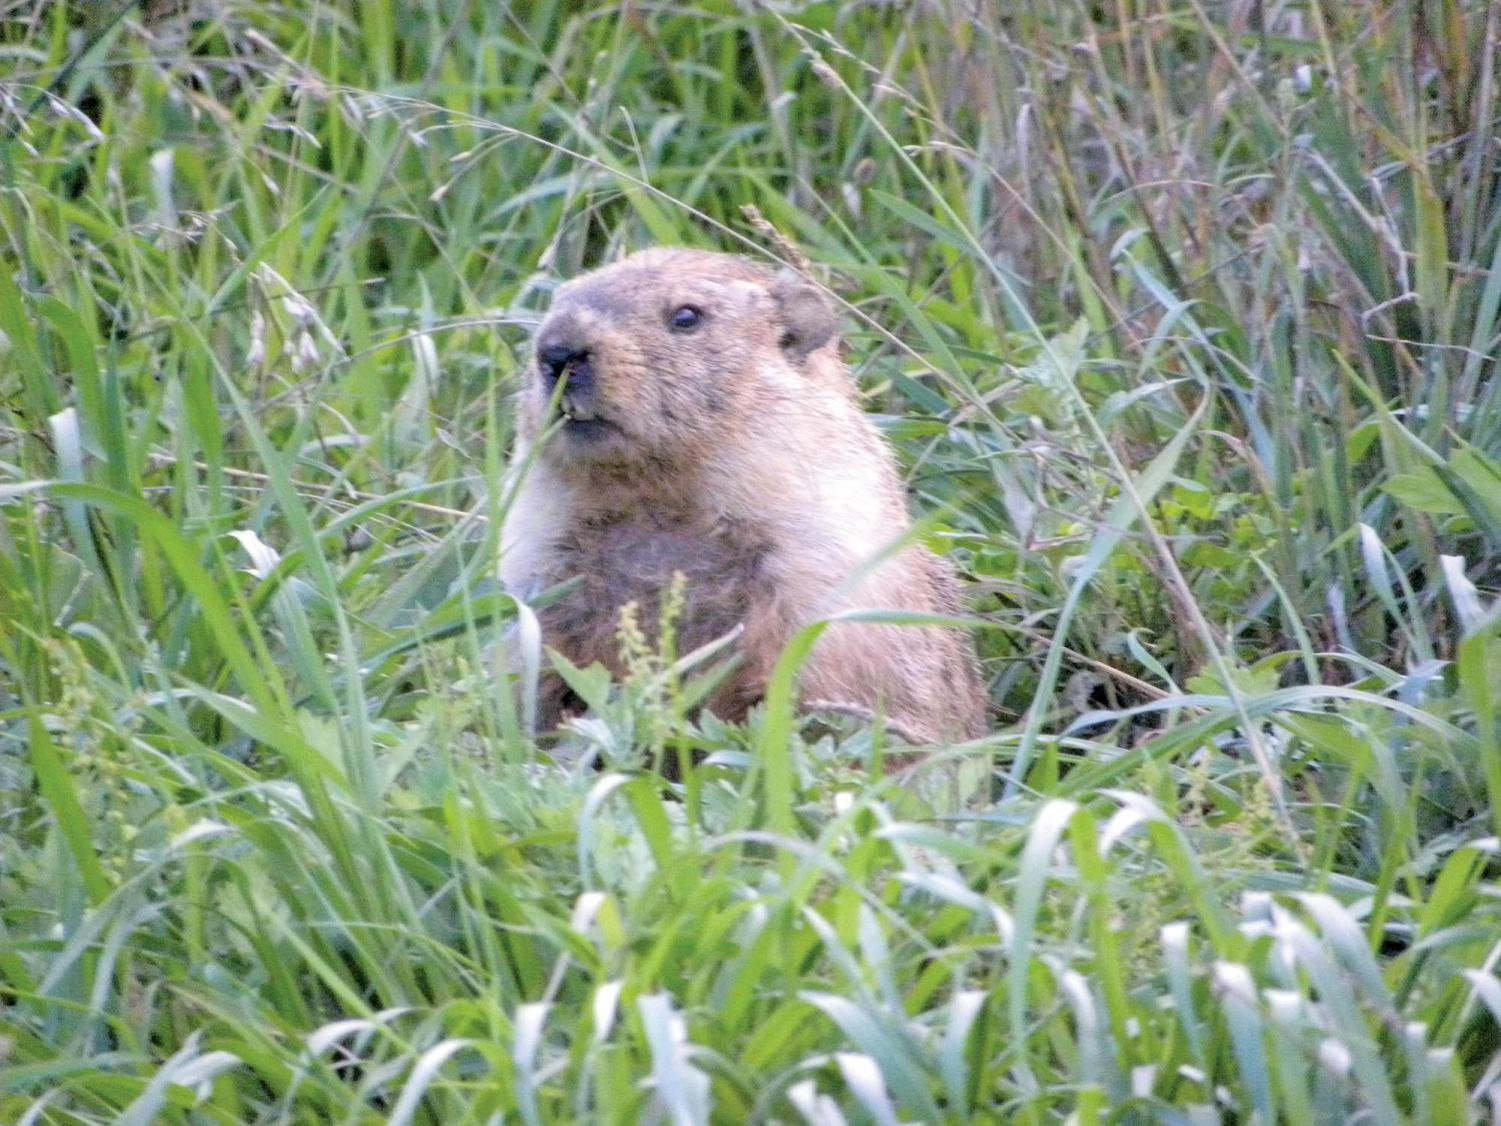 Groundhog predicts an early spring on Feb. 2.